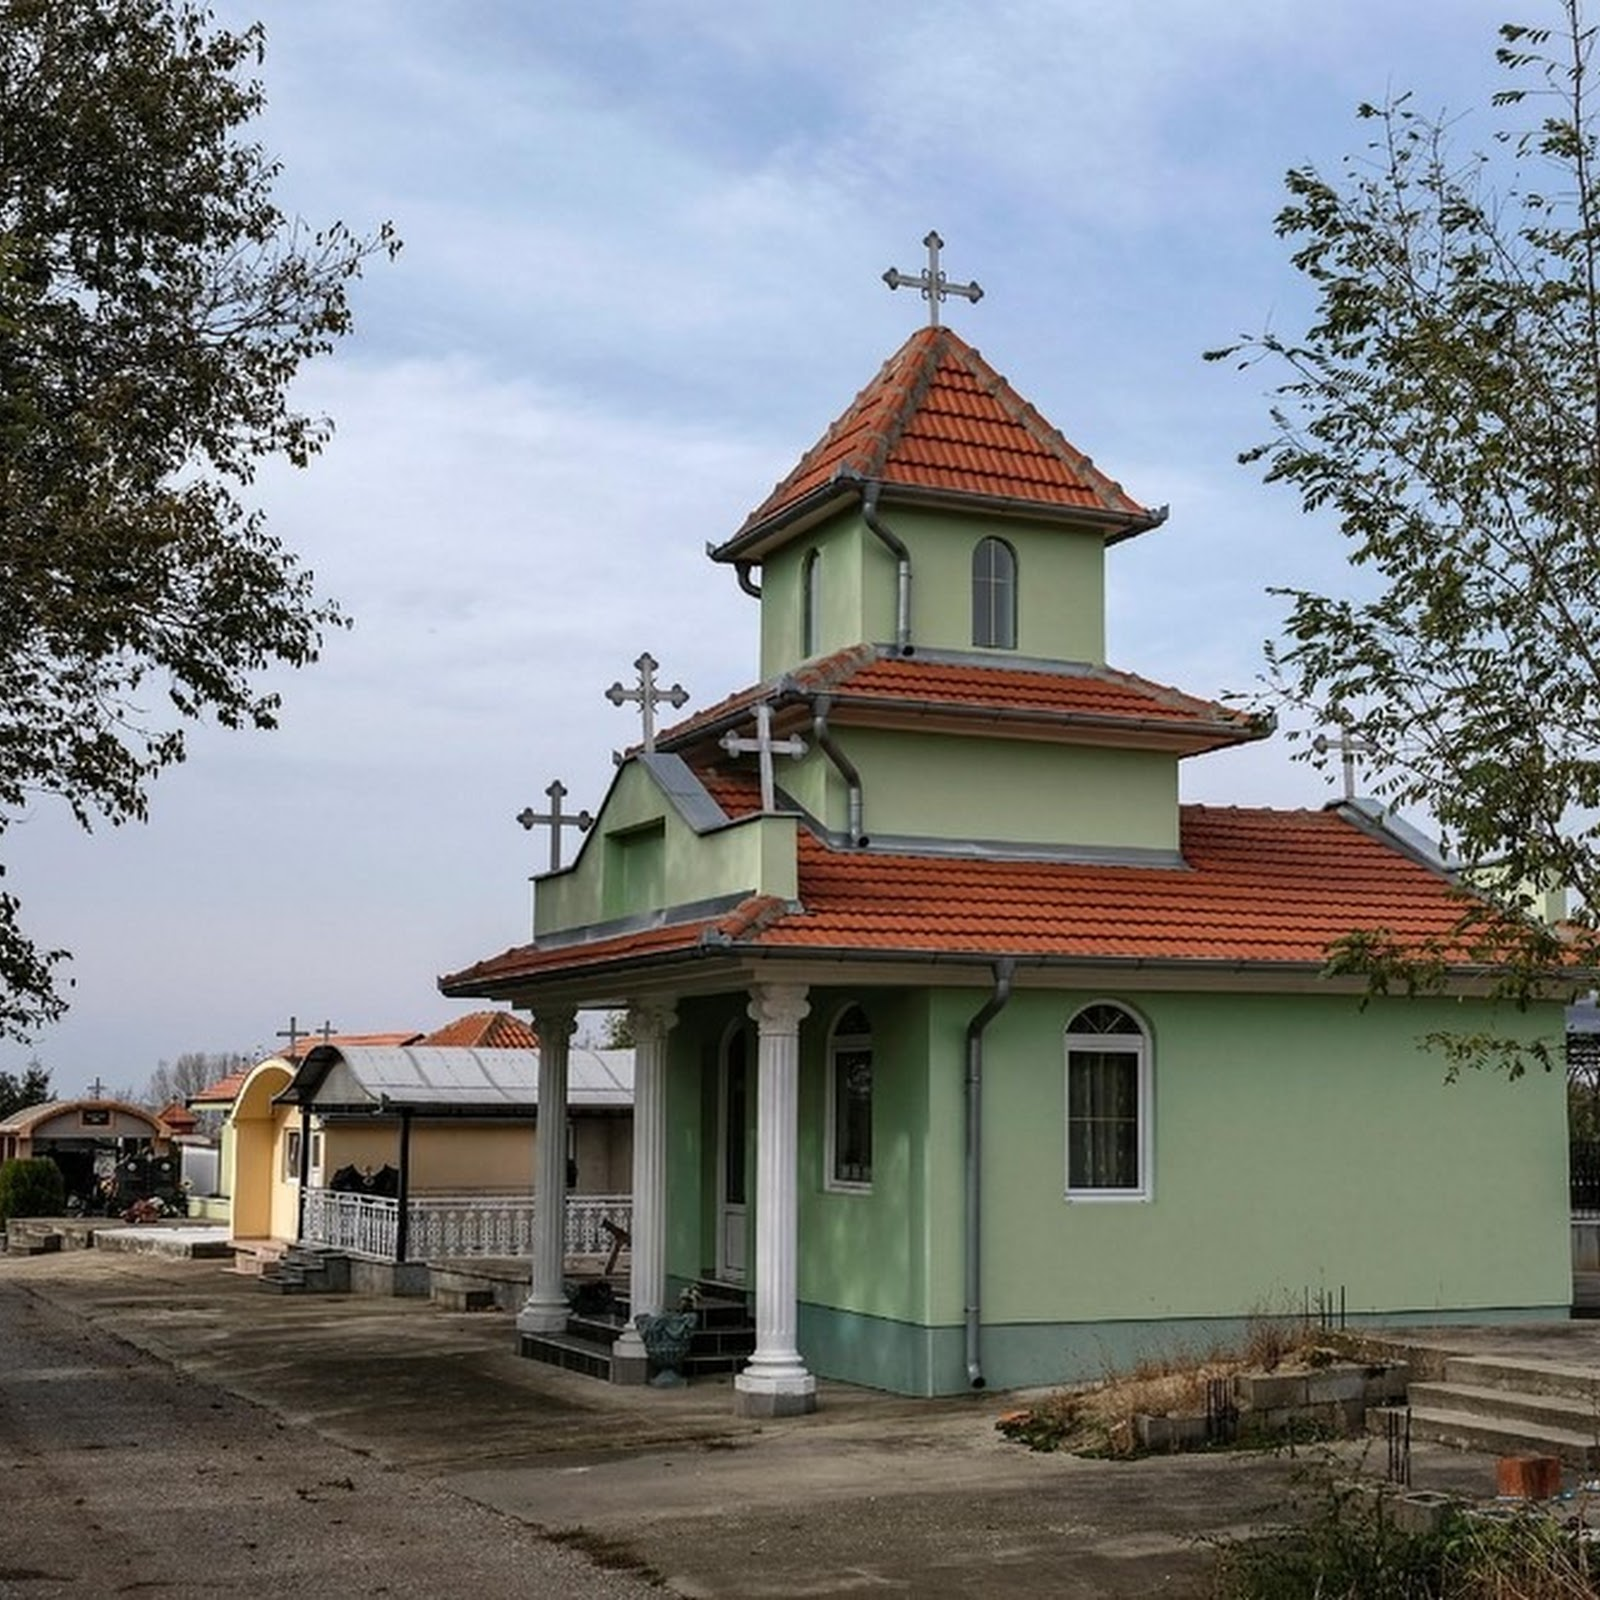 Three Brothers Bungalows: The Bungalows Of Eastern Serbia's Cemeteries